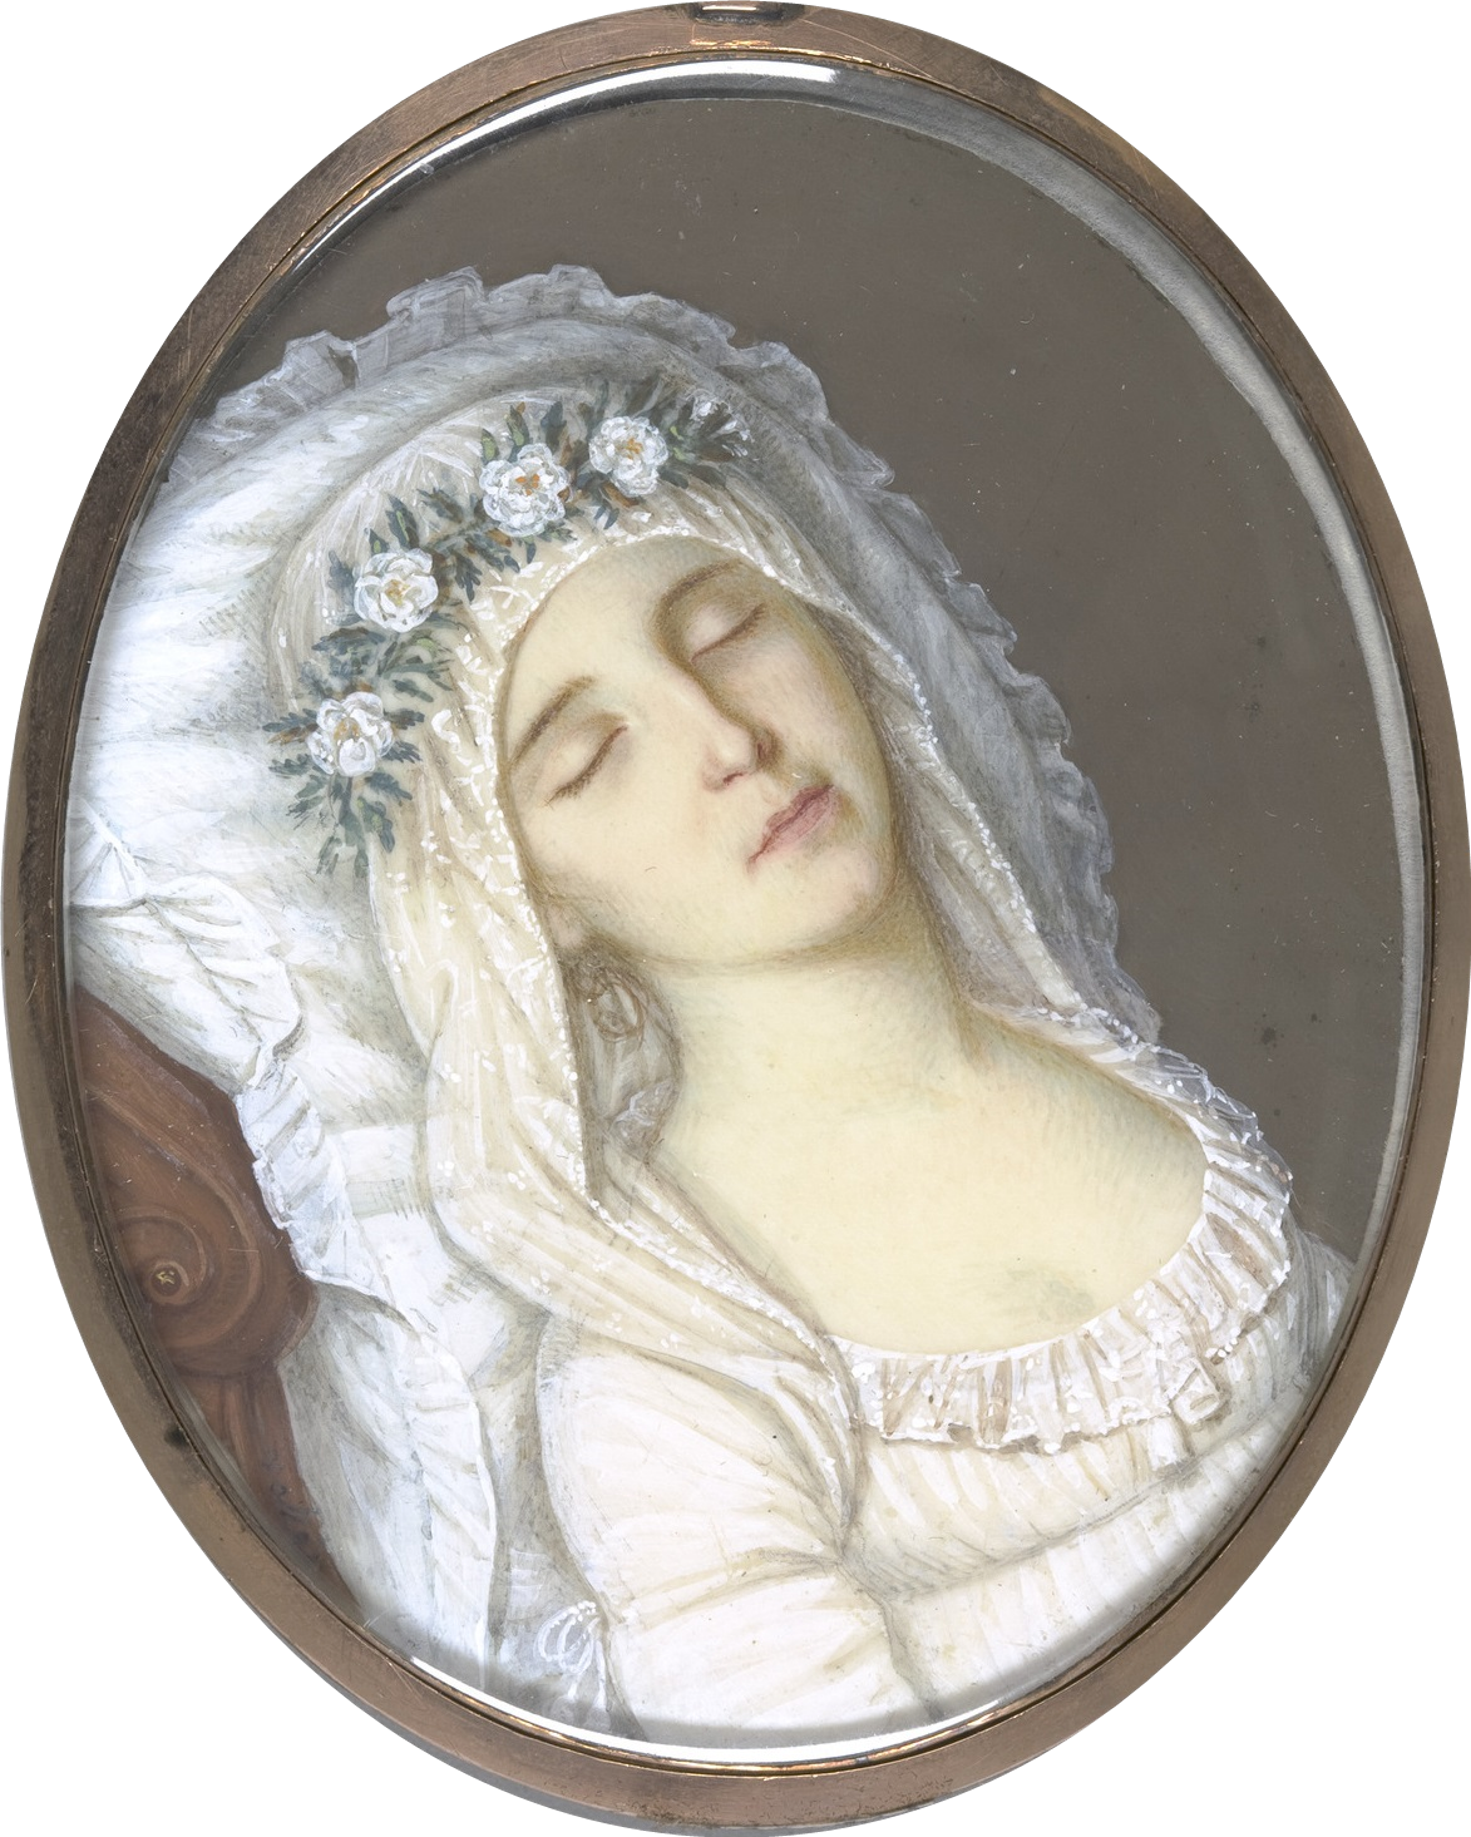 Bureid in her wedding dress, Harriet Mackie died just before her wedding in 1804.